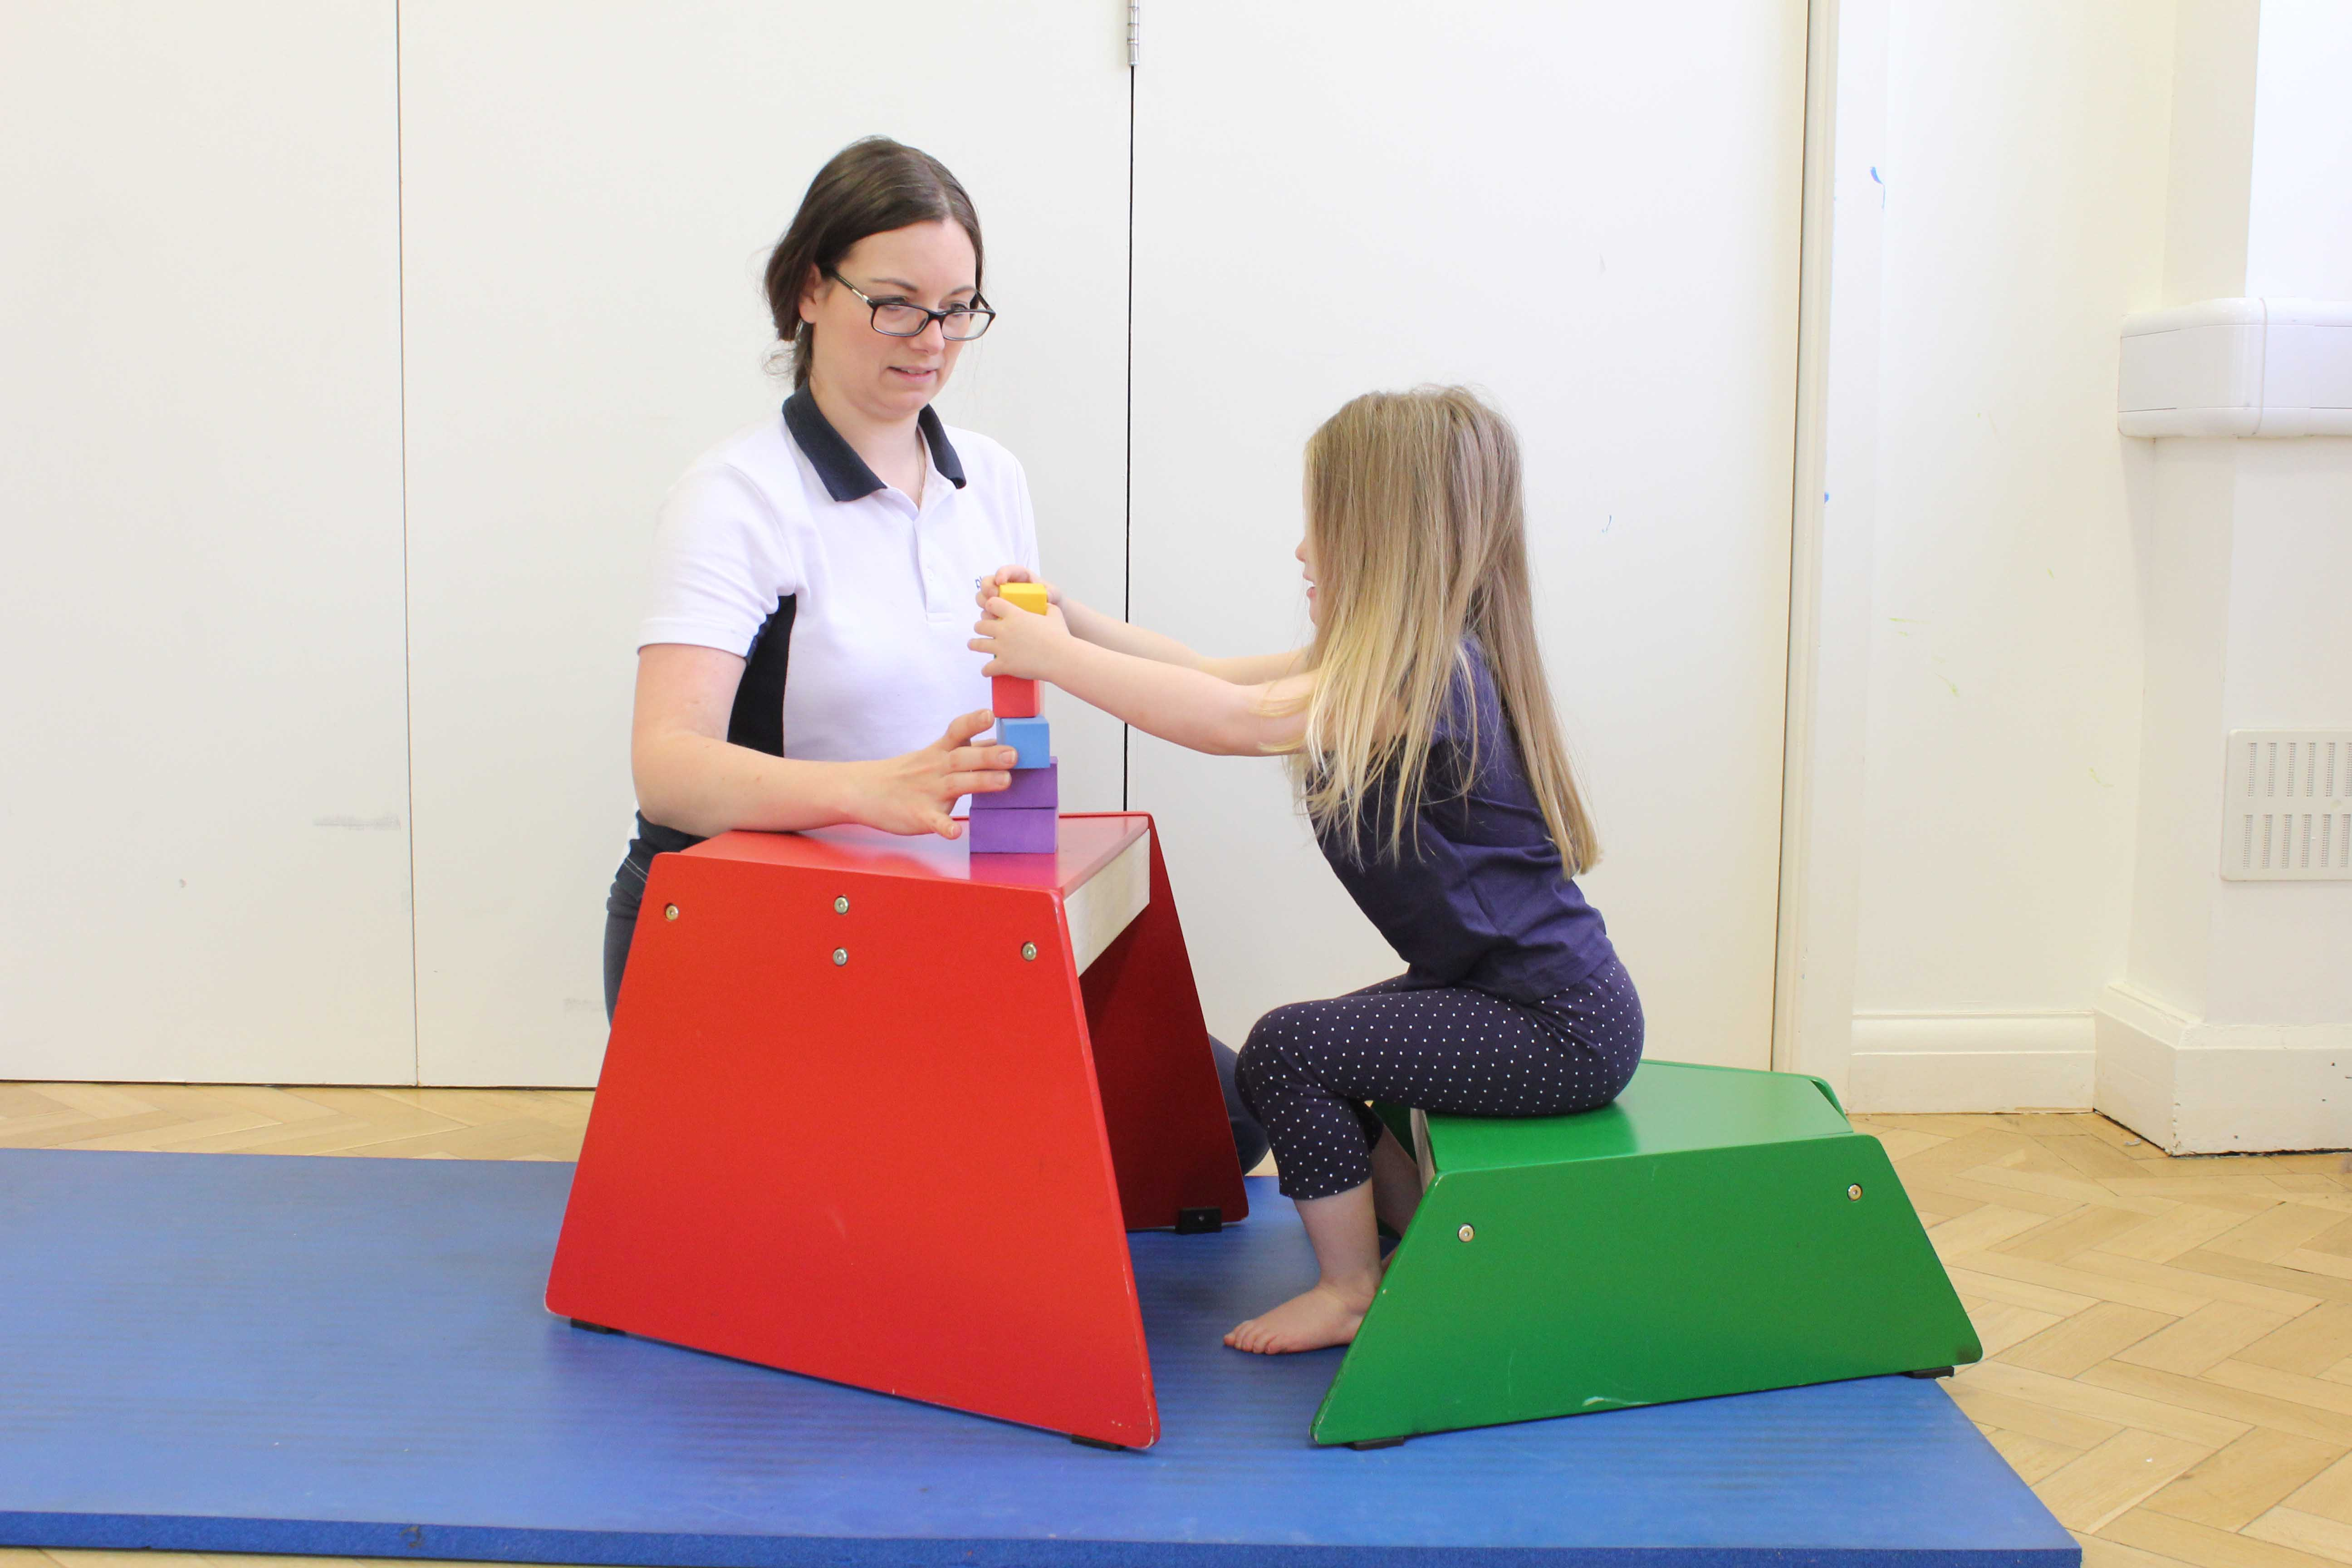 Developing sensory understanding through active play assisted by a physiotherapist